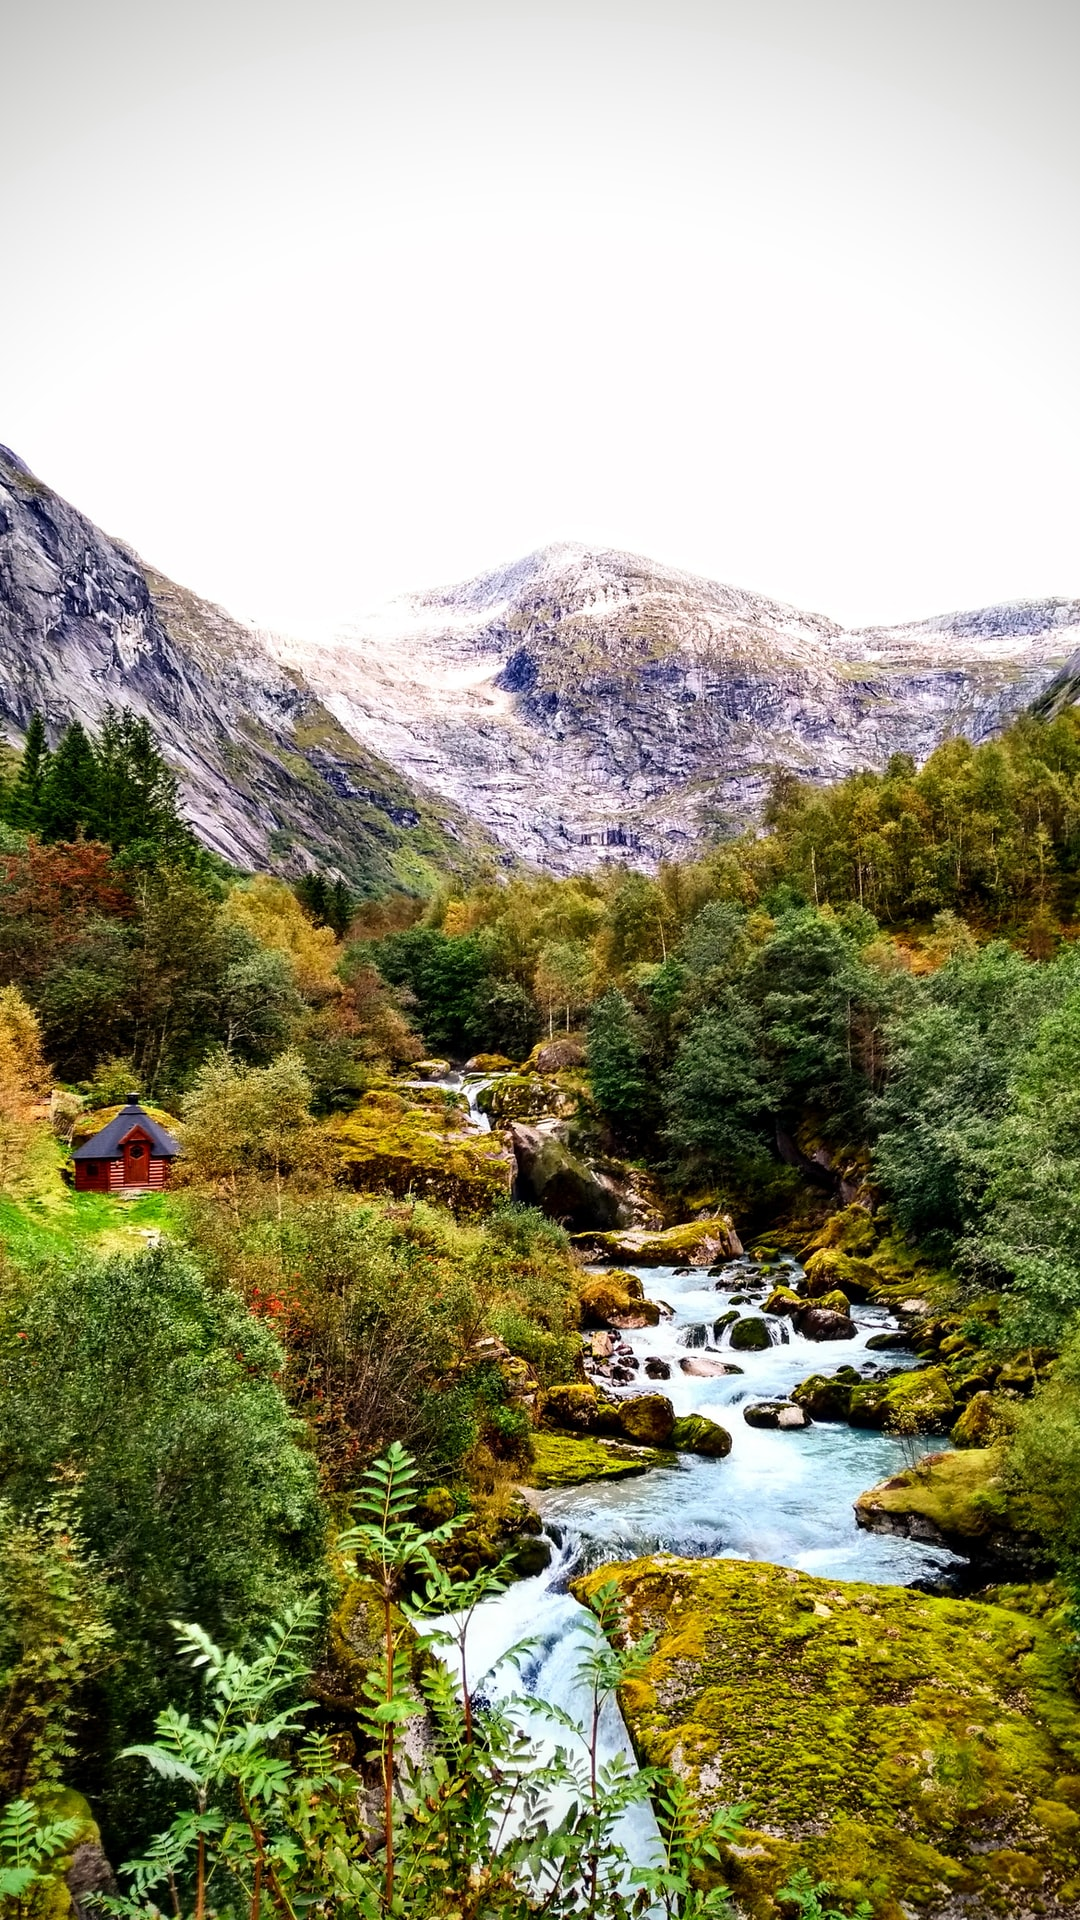 A little cabin by the river at the Lunde Turiststatjon near Jølster, Norway.